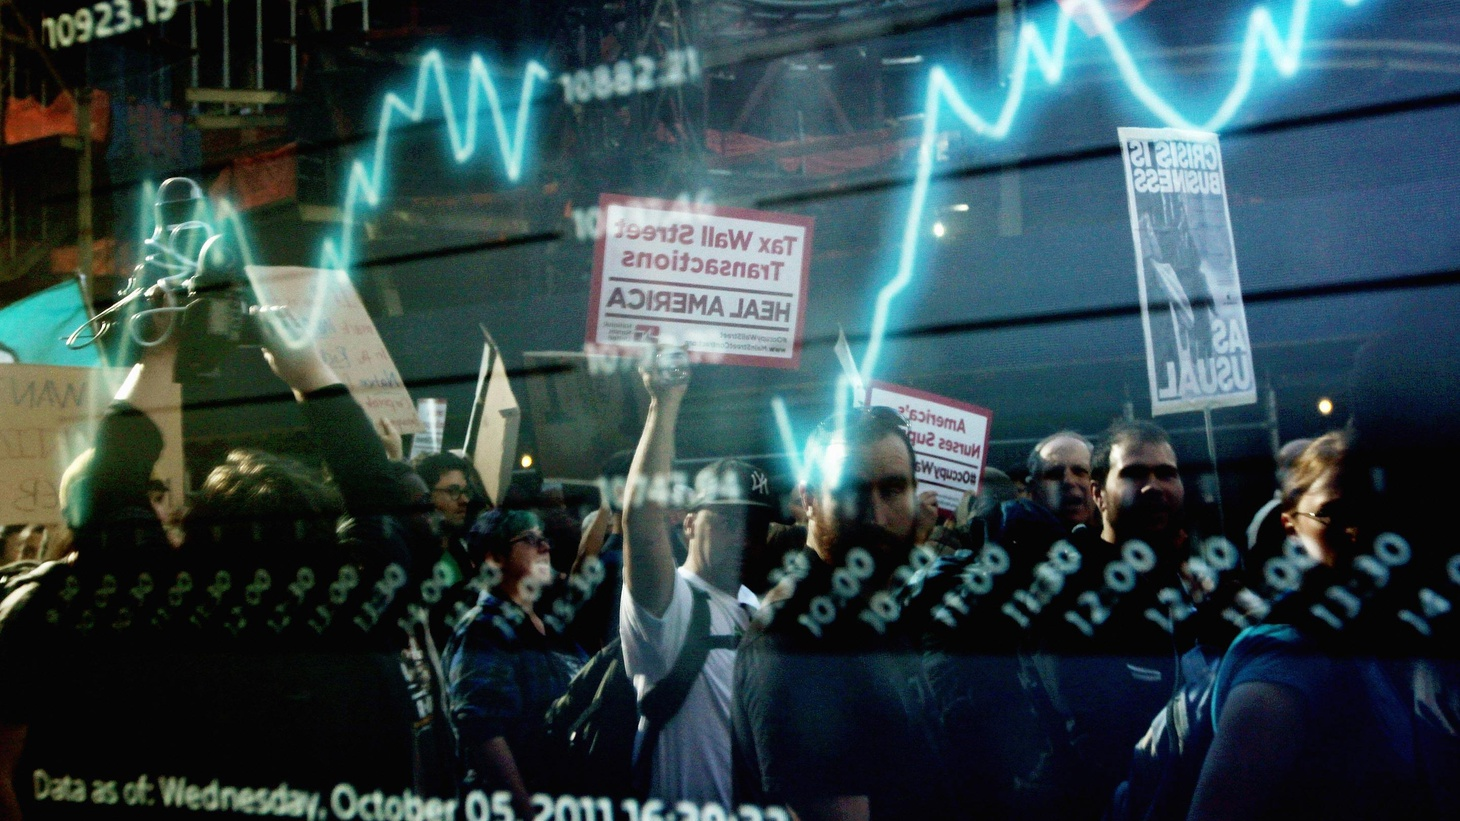 Employment stalls as Occupy Wall Street protests increase in intensity. Palin and Christie are out as Romney ramps up. Finally, we remember Apple founder Steve Jobs.